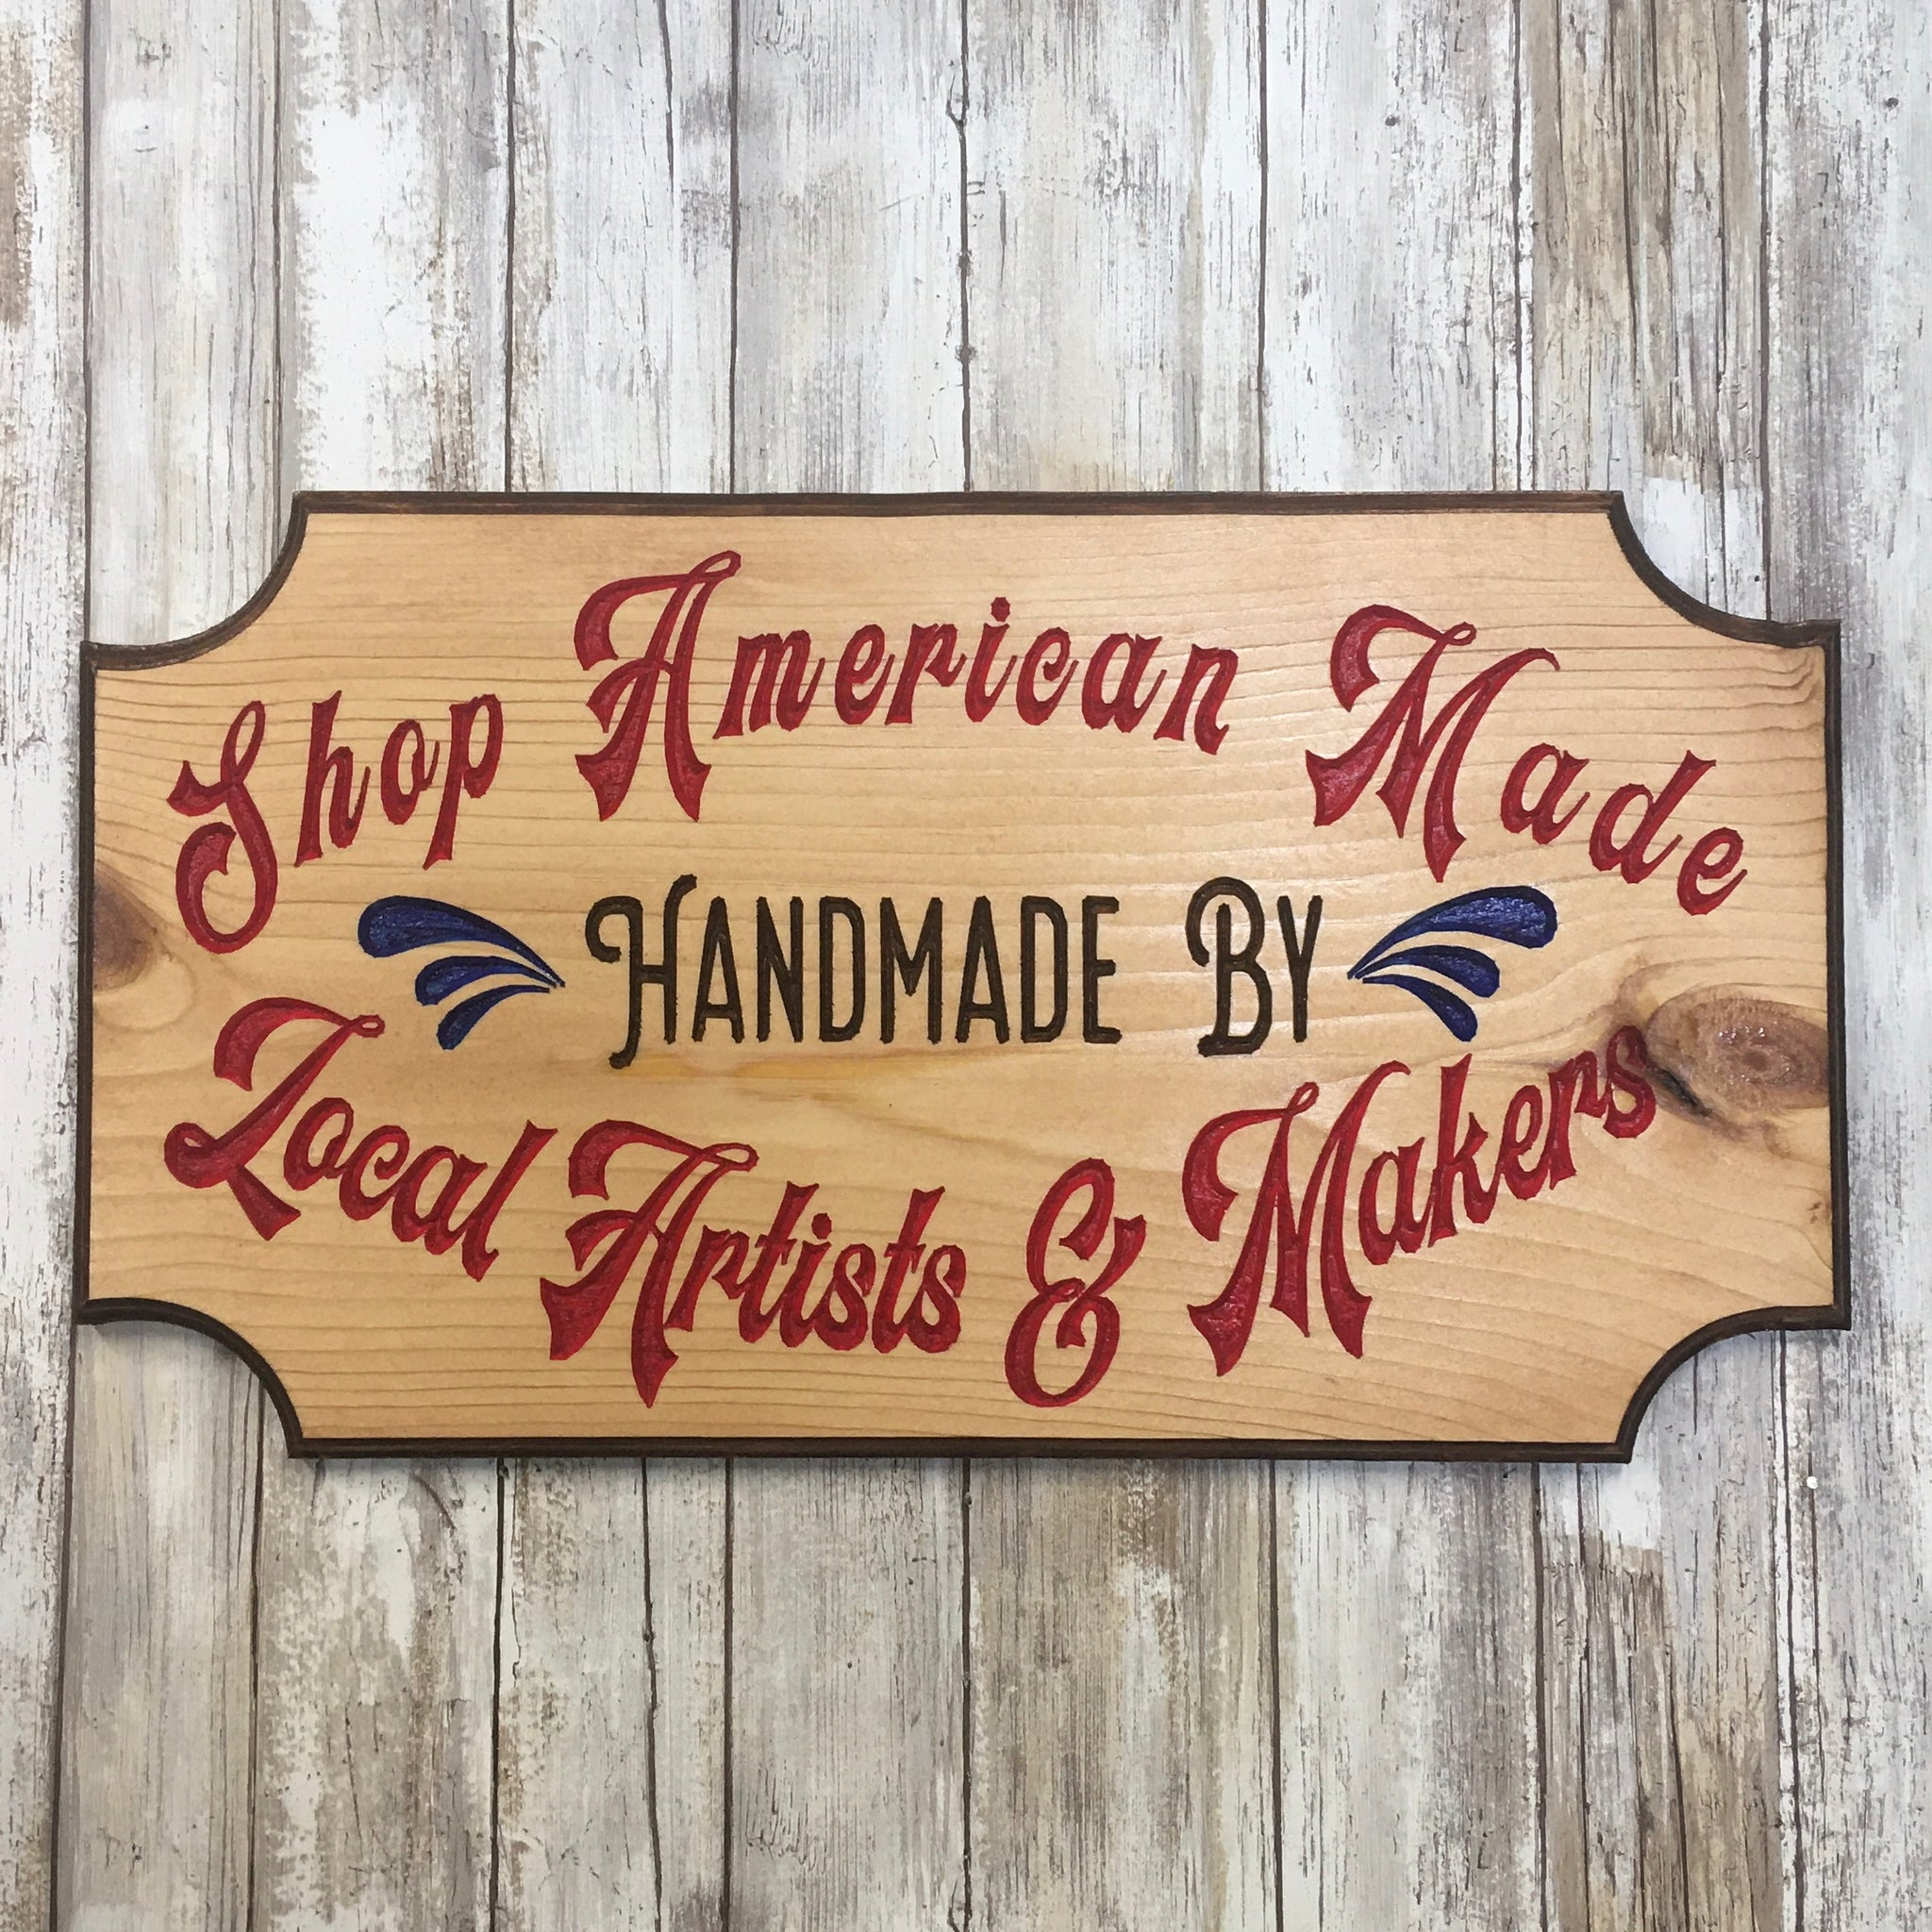 Shop American Made Handmade by Local Artists & Makers Sign